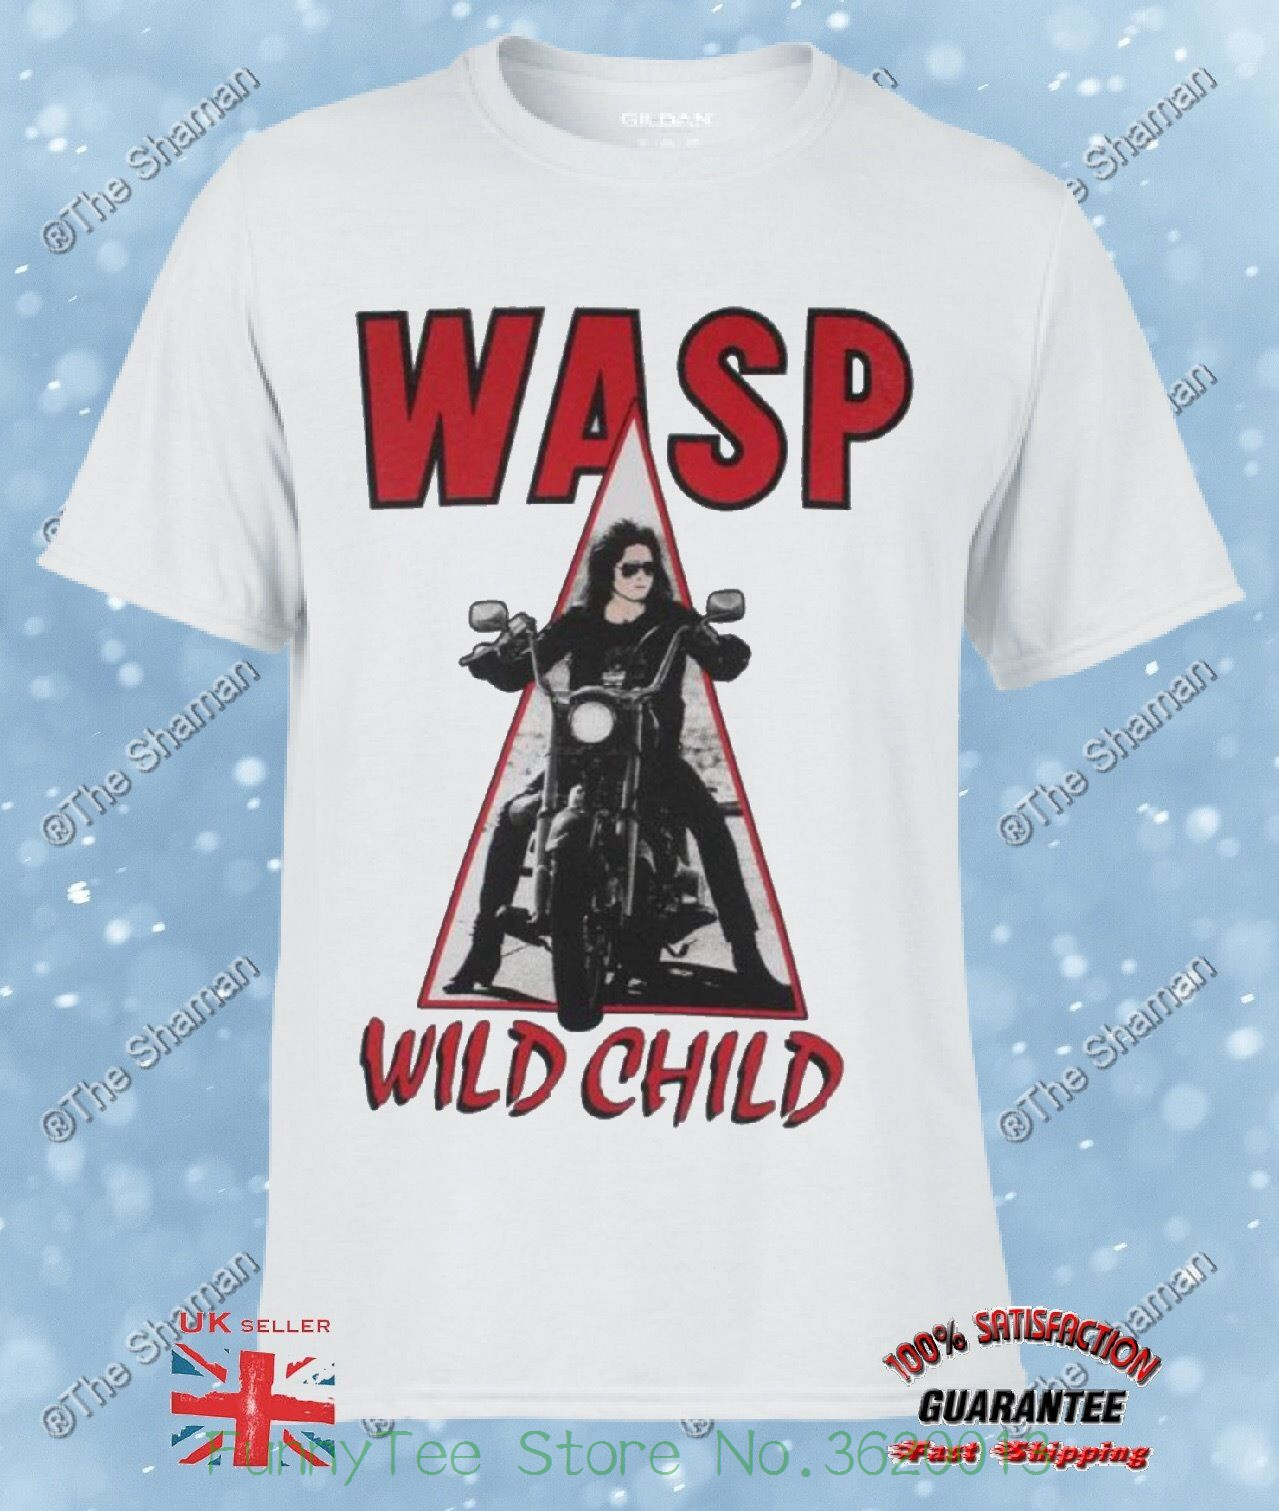 W.a.s.p. Wild Child&#039 ; 85 Heavy Metal Band Wasp Twisted Sister New White T-shirt 57